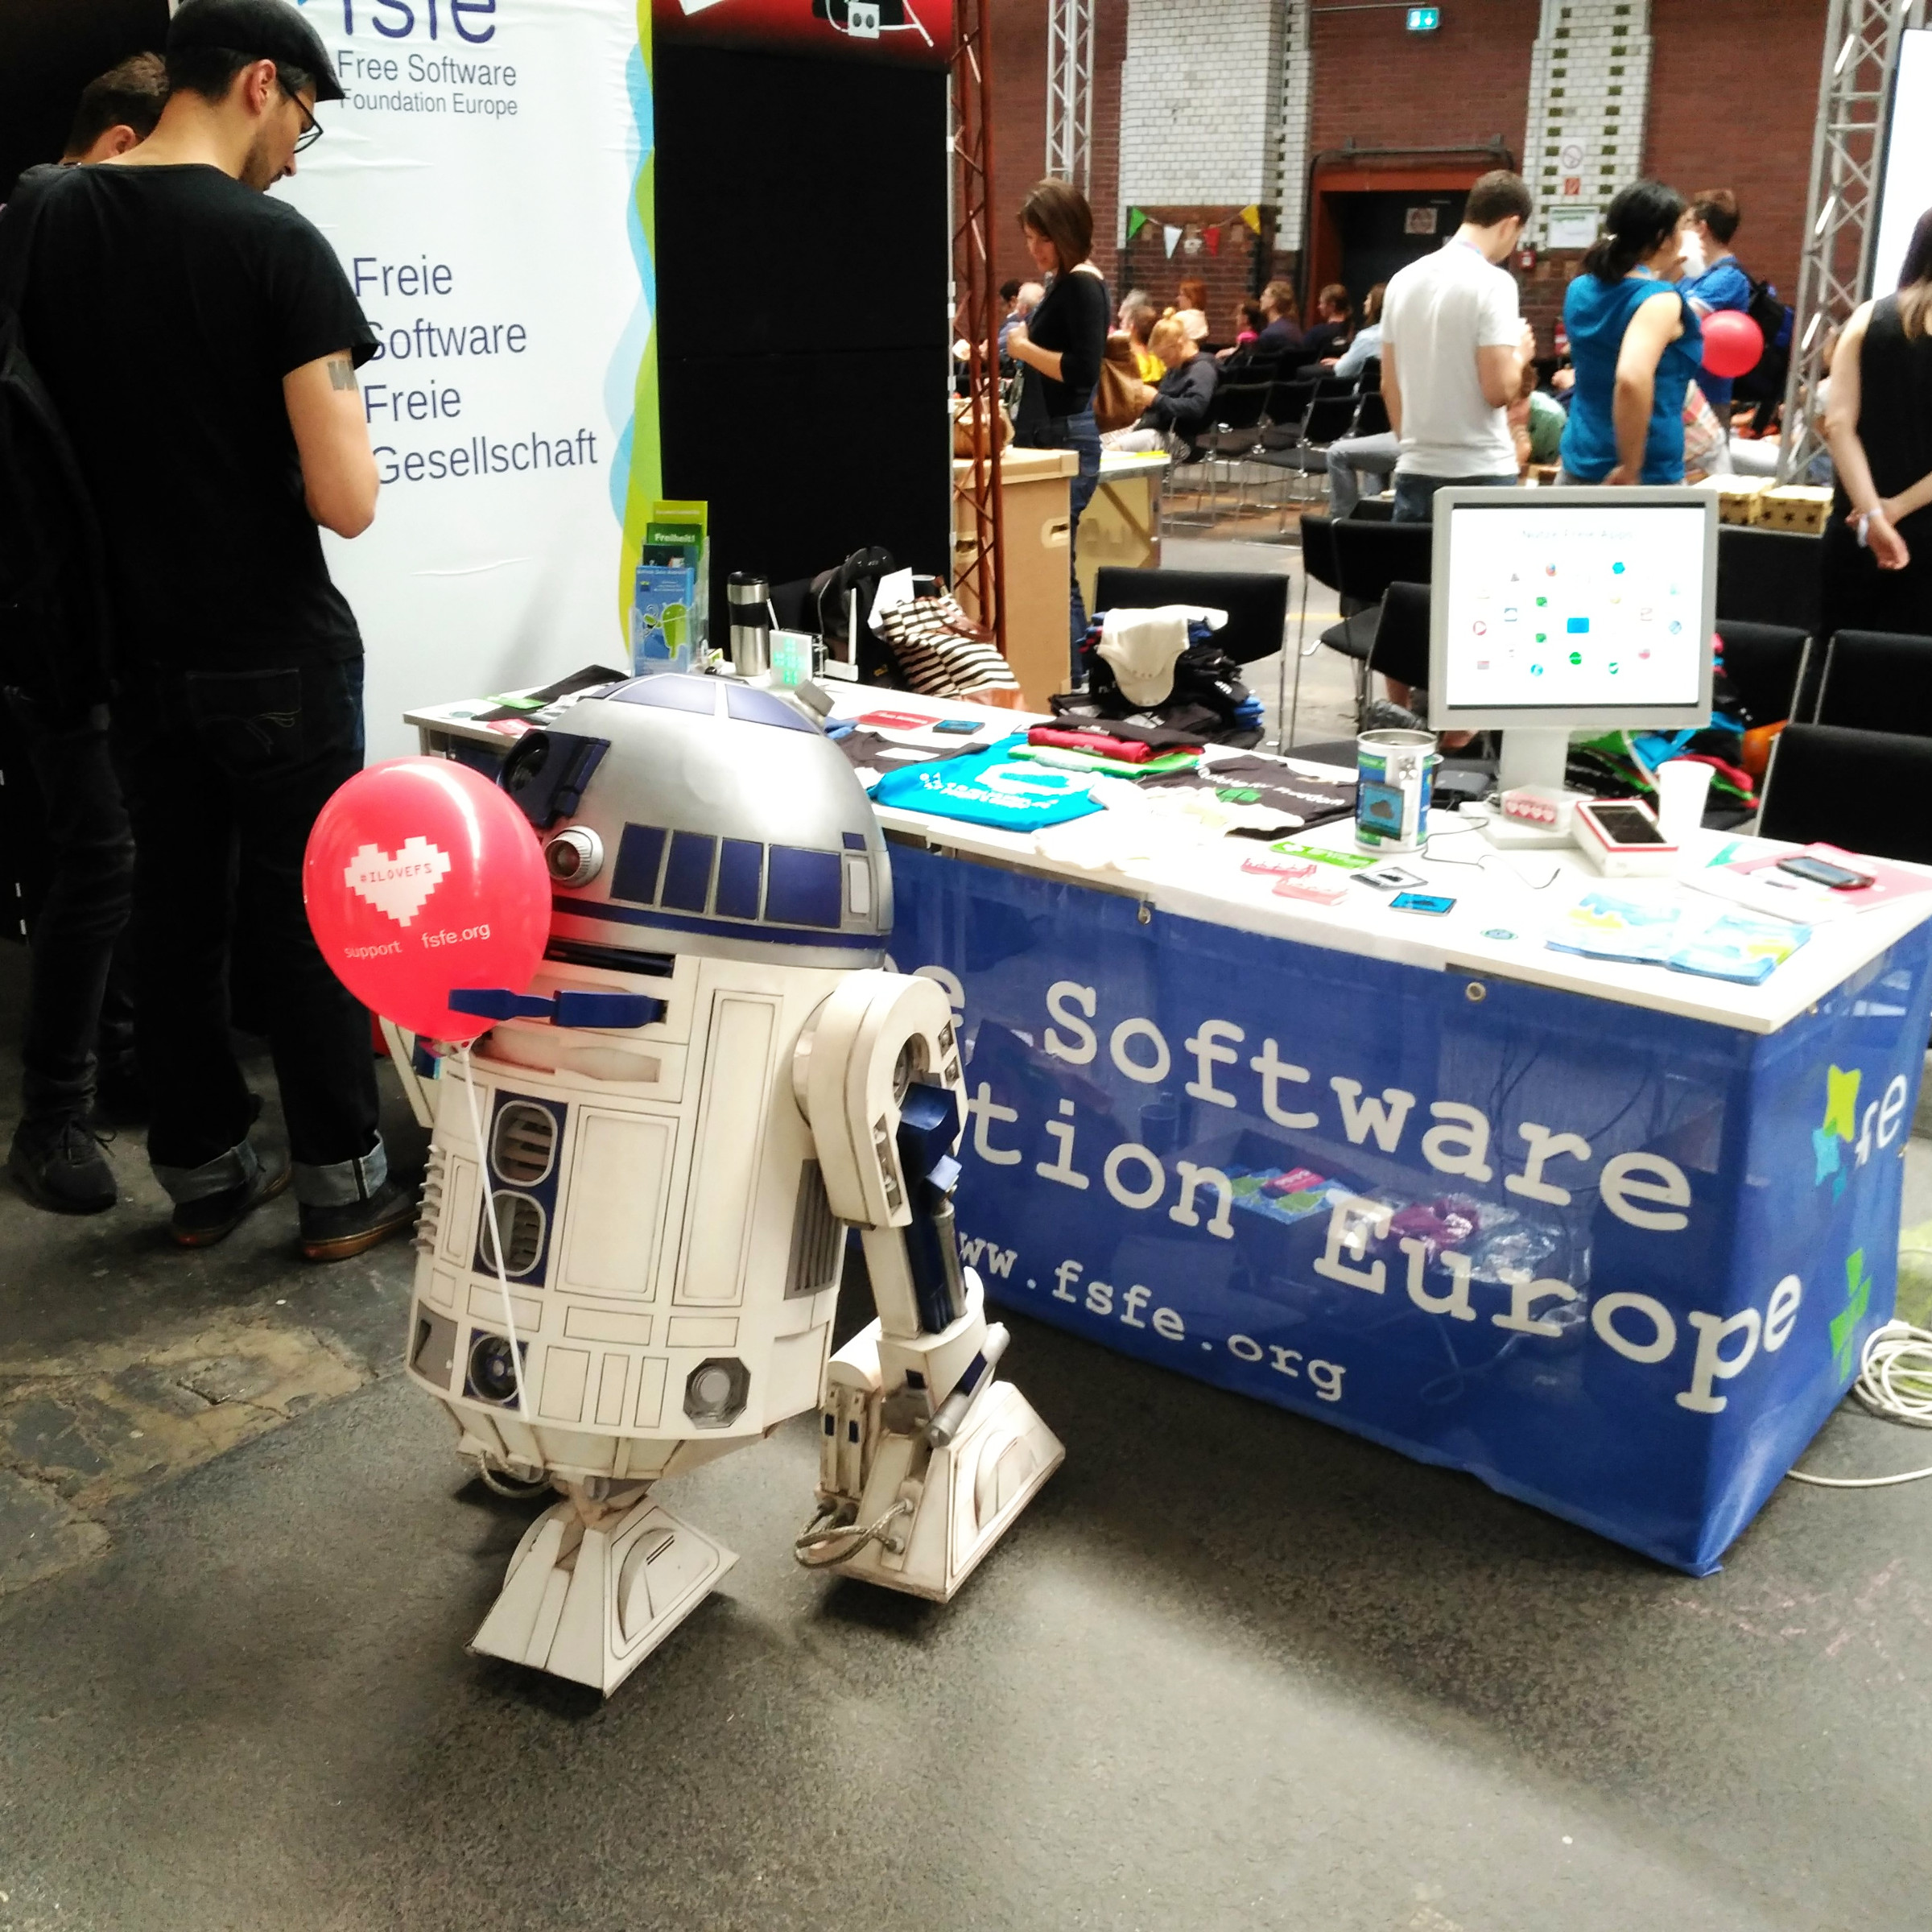 R2D2 with IloveFS